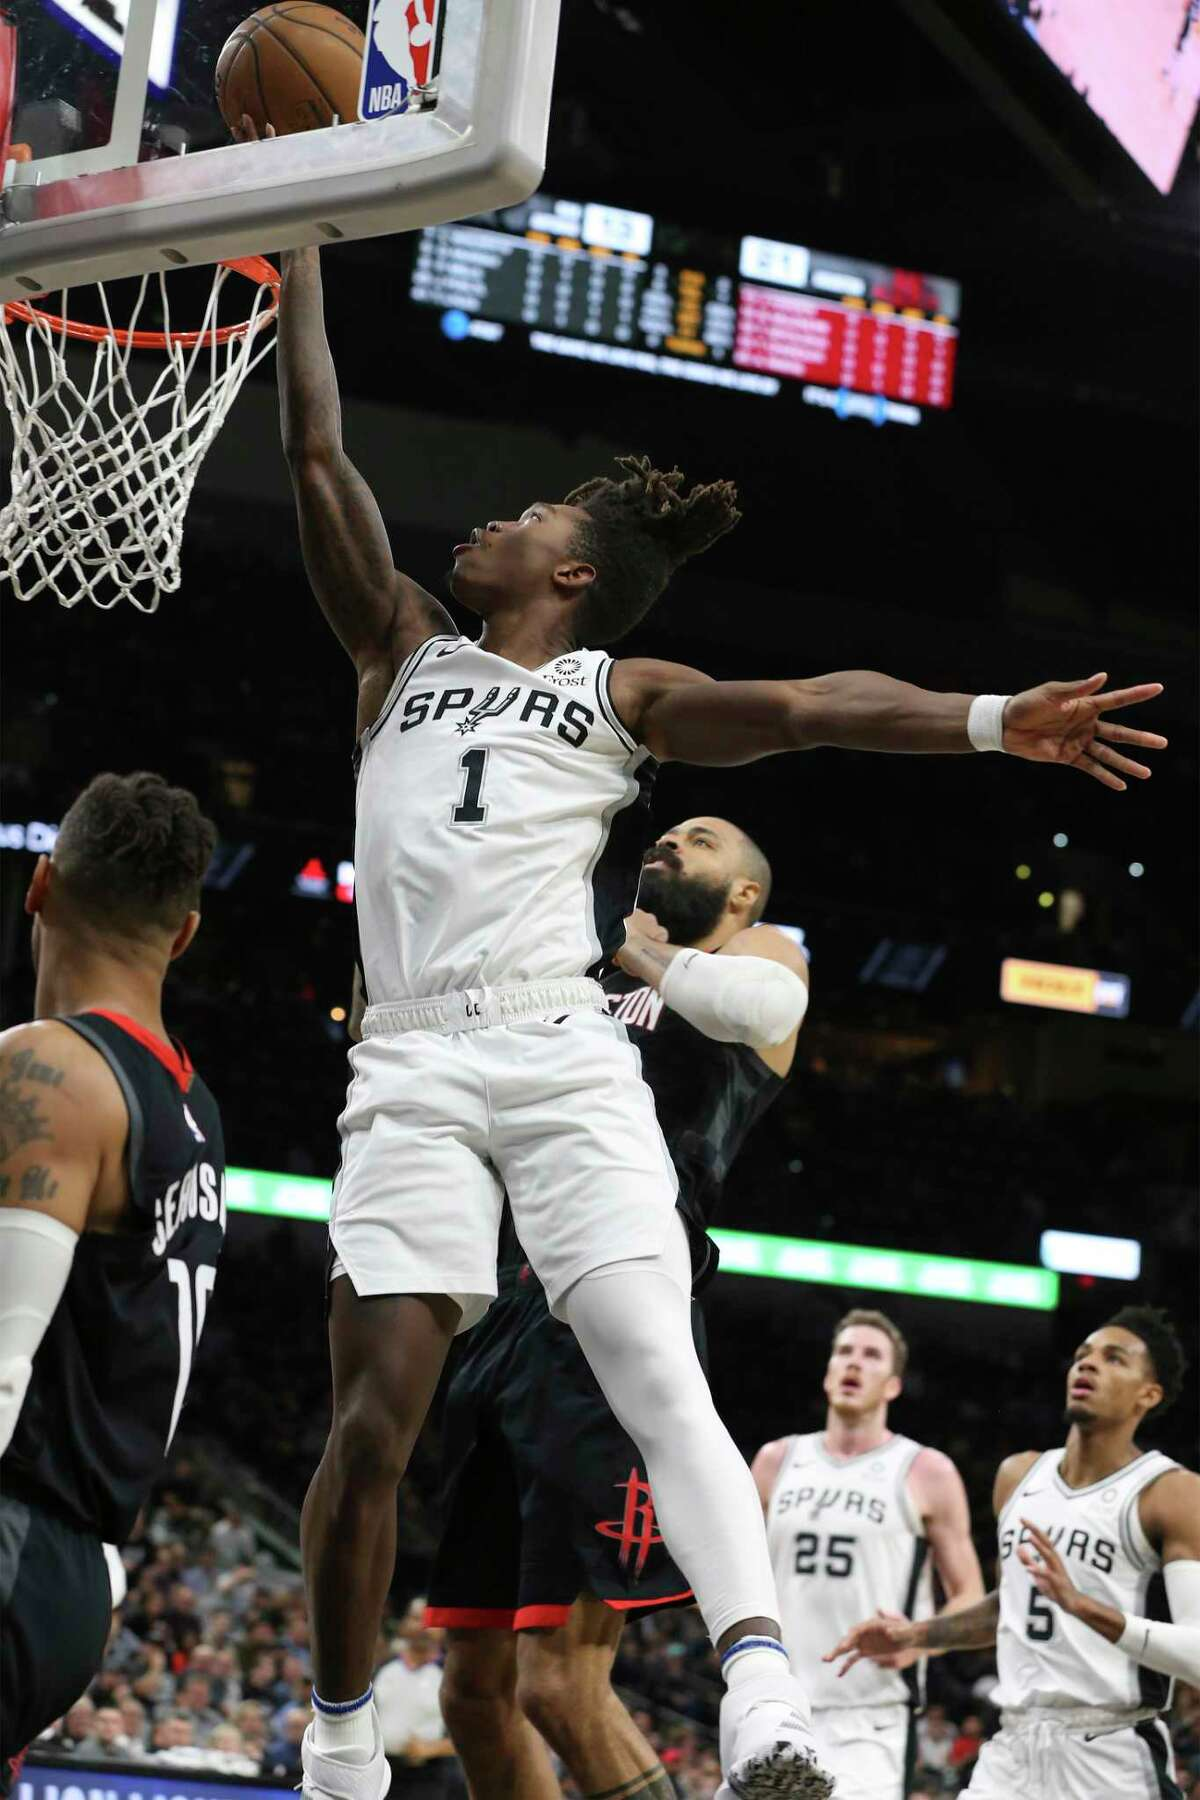 Spurs' Lonnie Walker IV (01) goes in for a score against Houston Rockets' Tyson Chandler (19) and Thabo Sefolosha (18) during their game at the AT&T Center on Tuesday, Dec. 3, 2019.